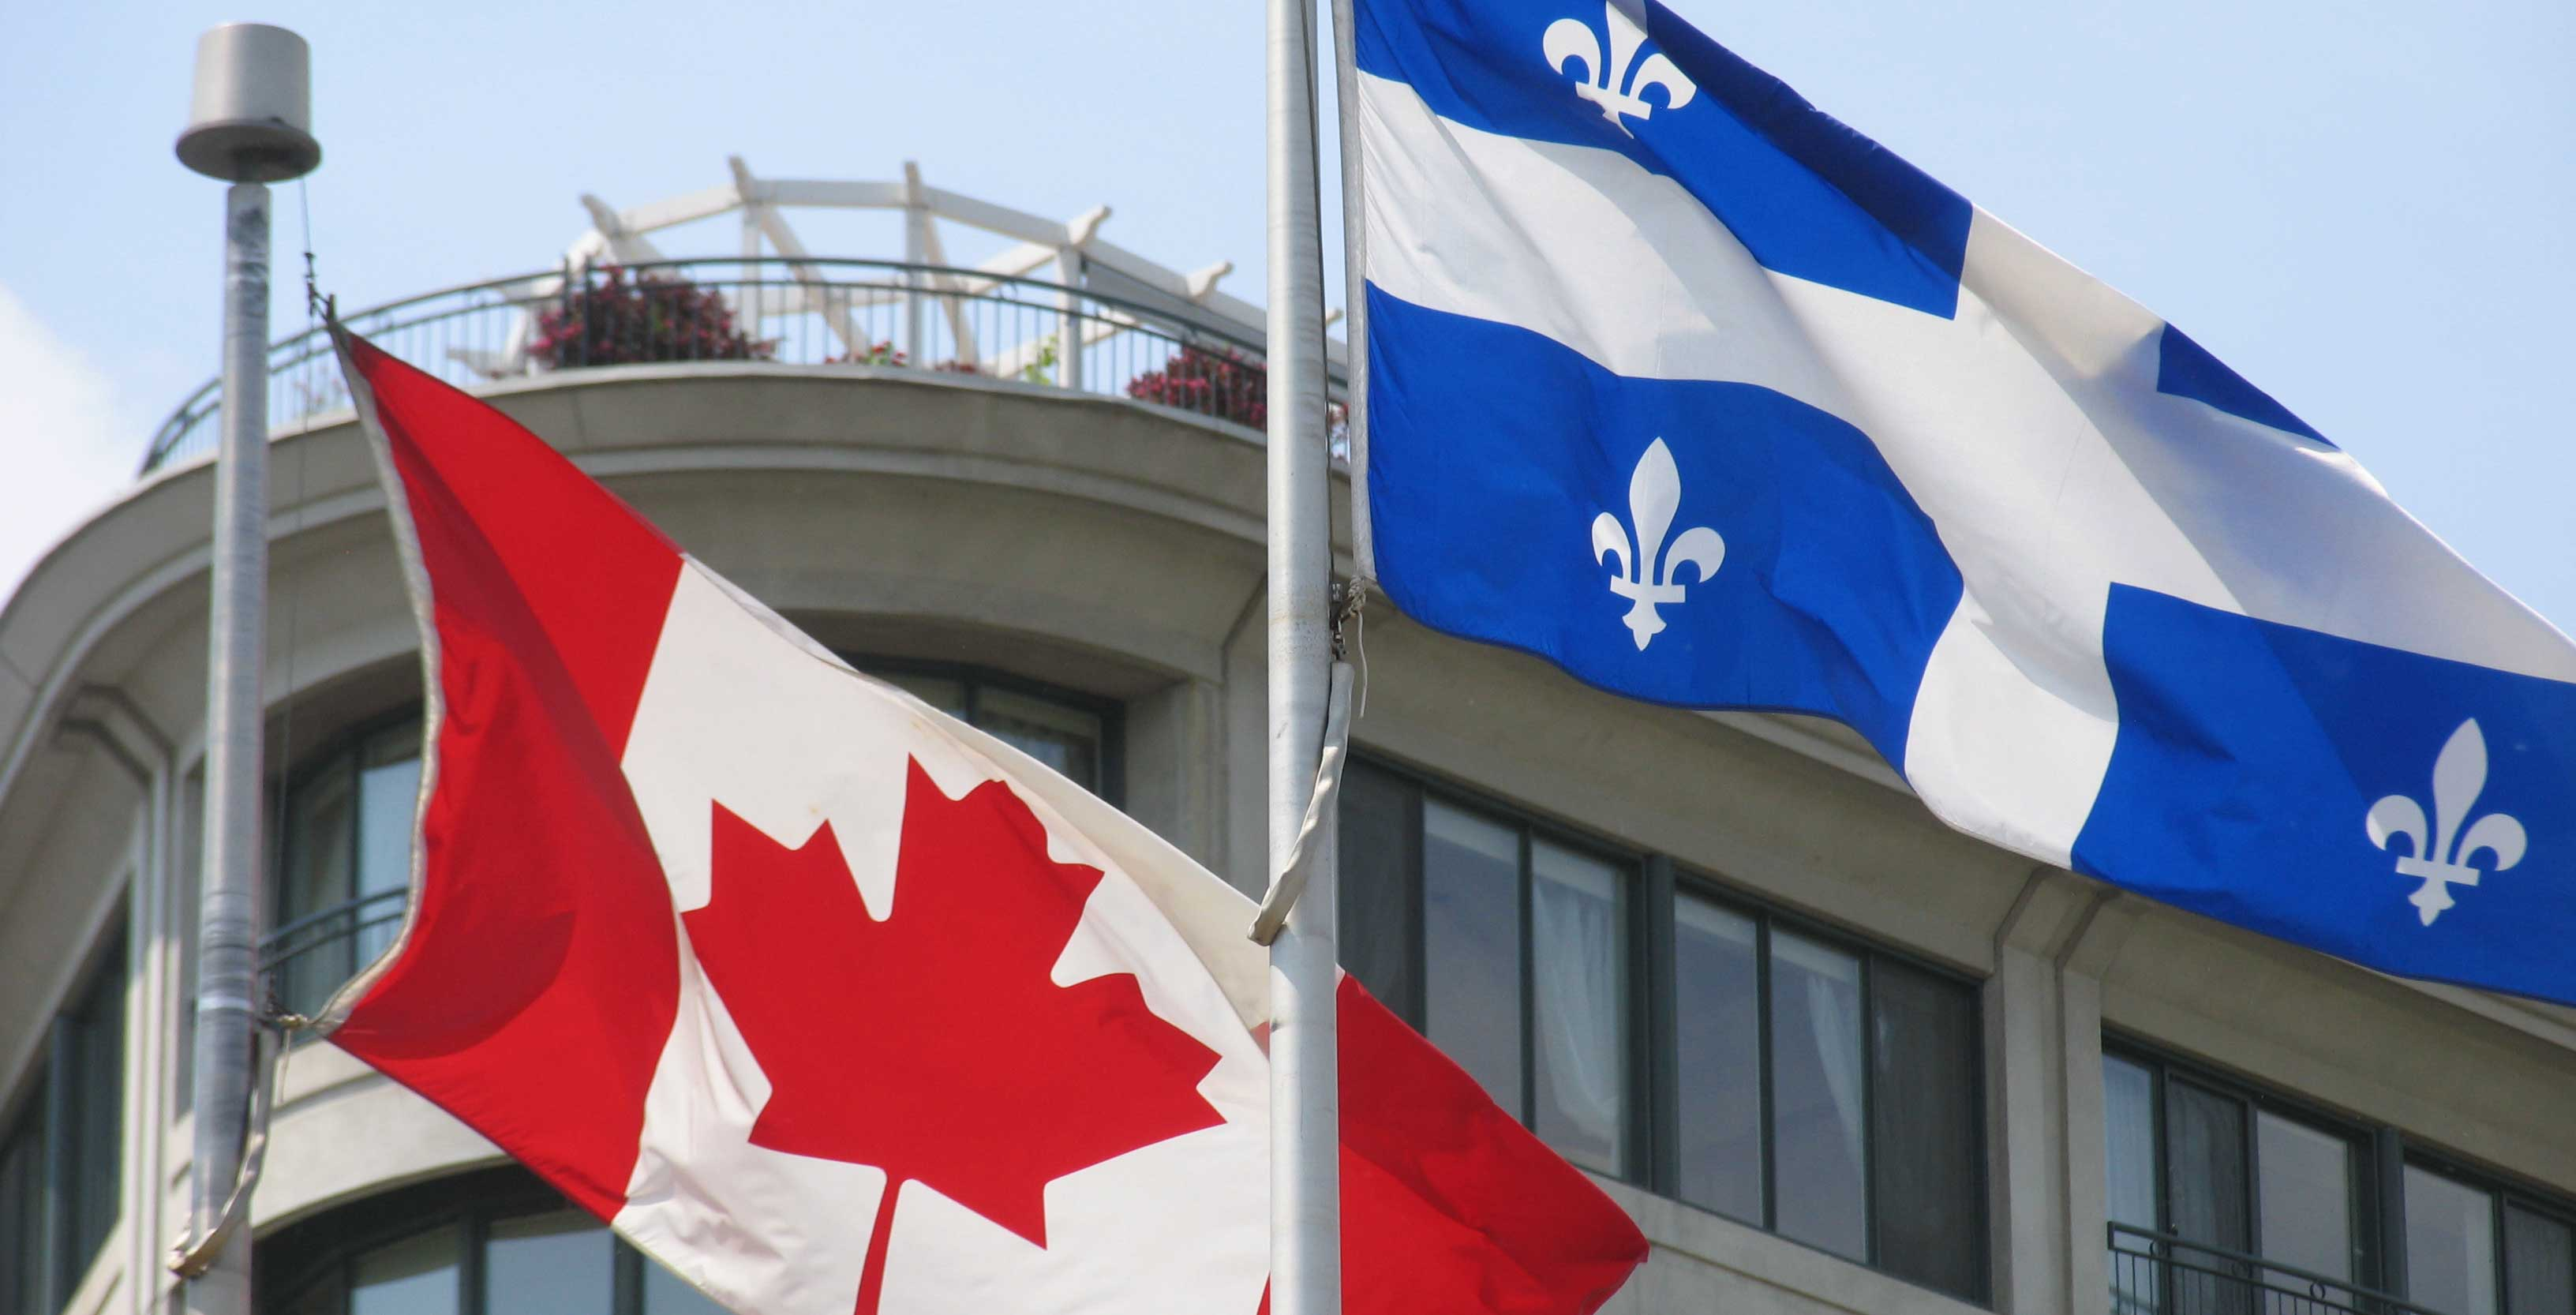 An image of the Quebec and Canada flags